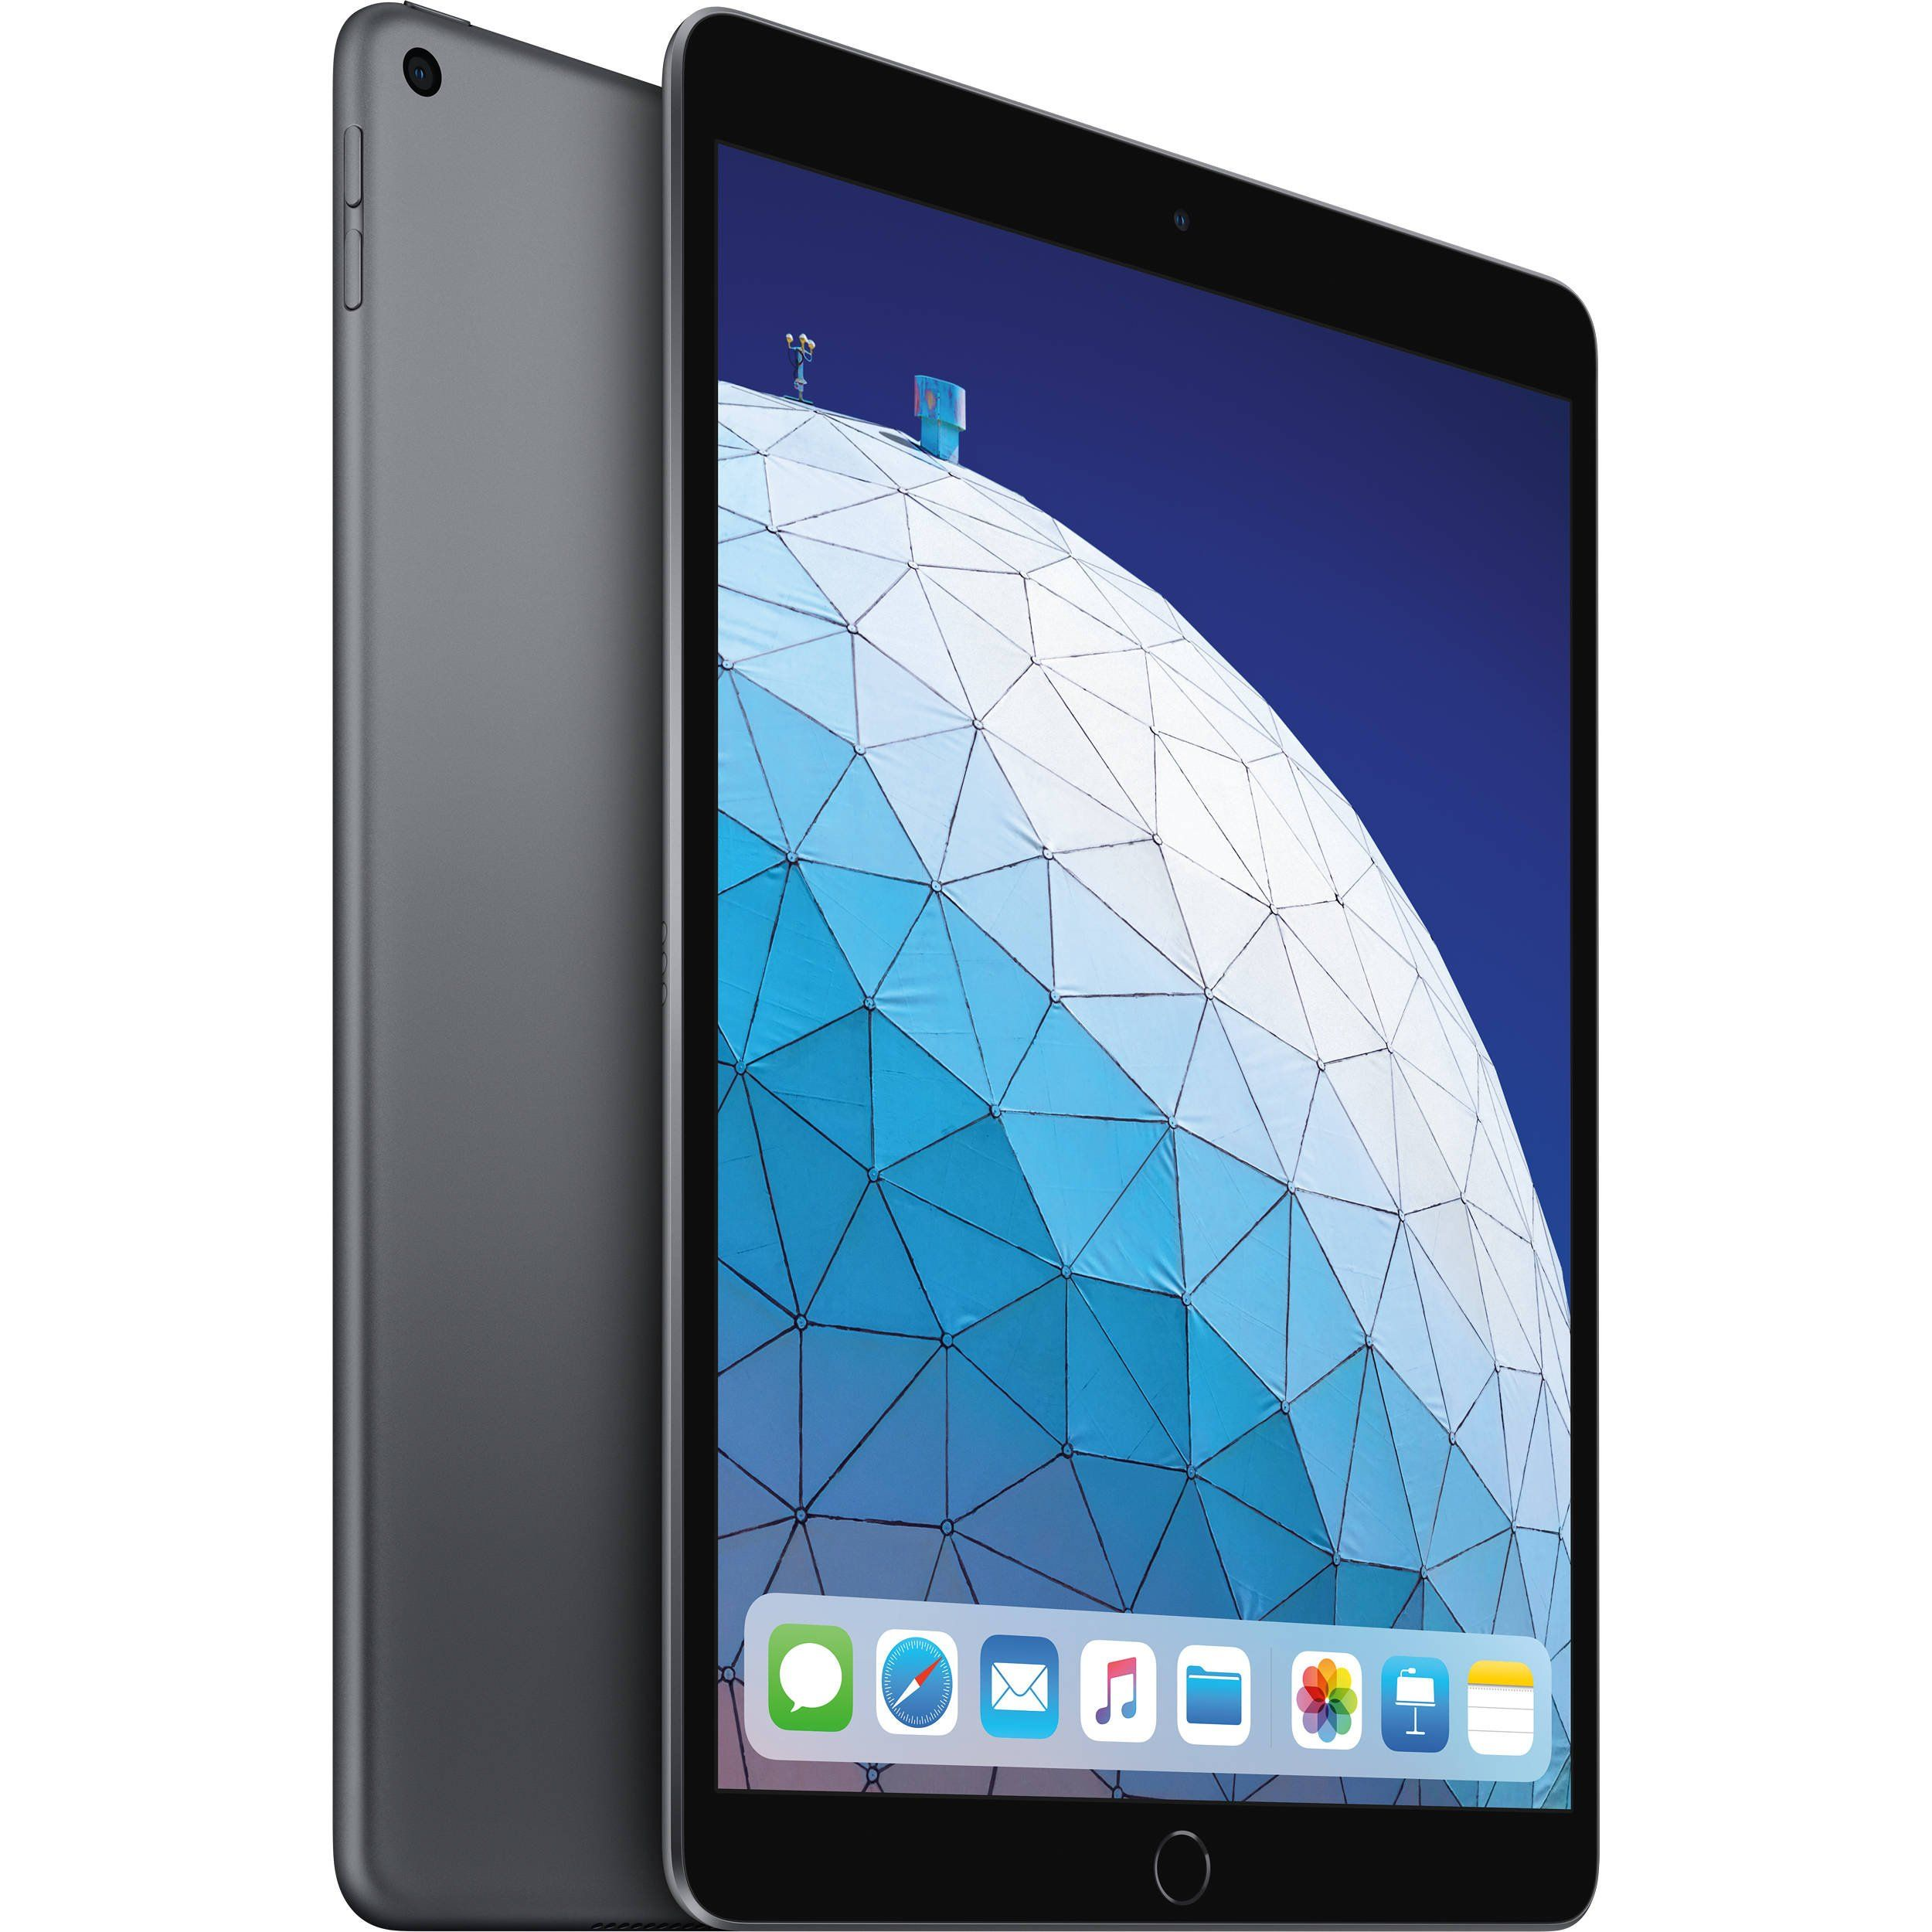 Apple Ipad Air 3rd Generation 256gb Space Gray In 2020 Apple Ipad Ipad Air Apple Ipad Air